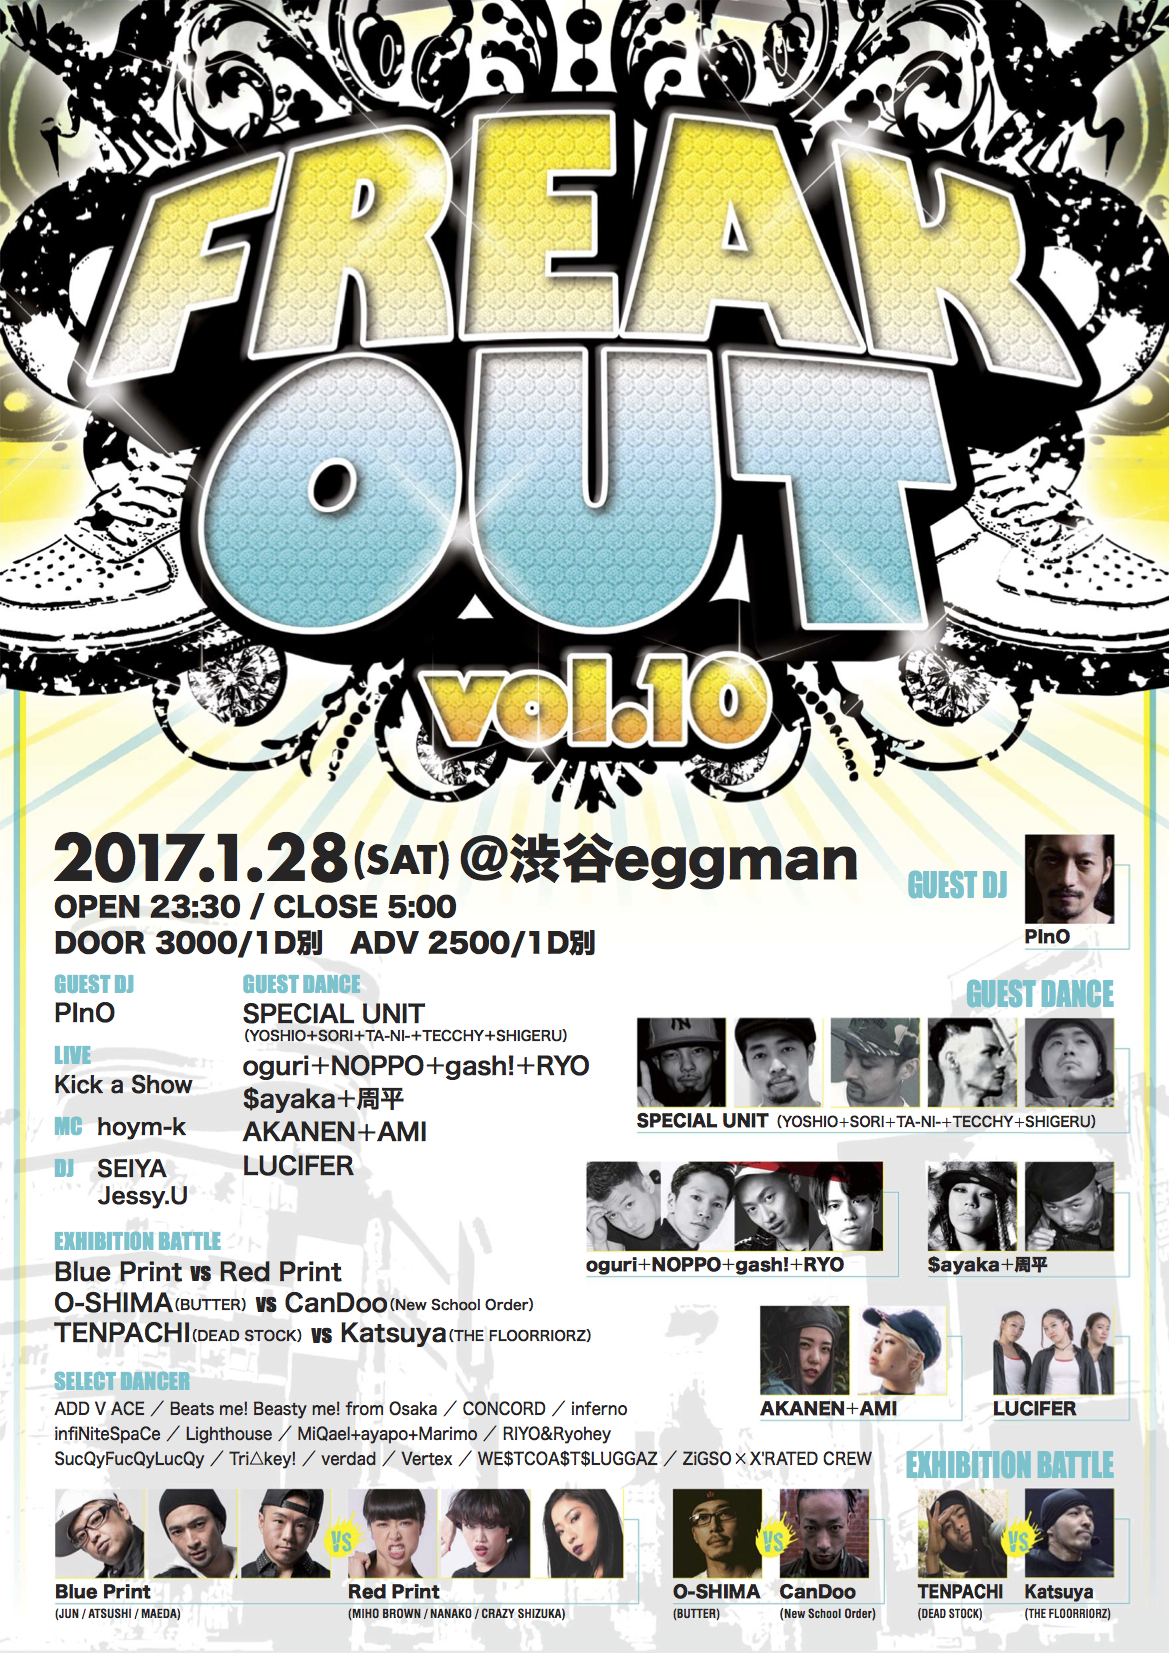 FREAK OUT VOL.10